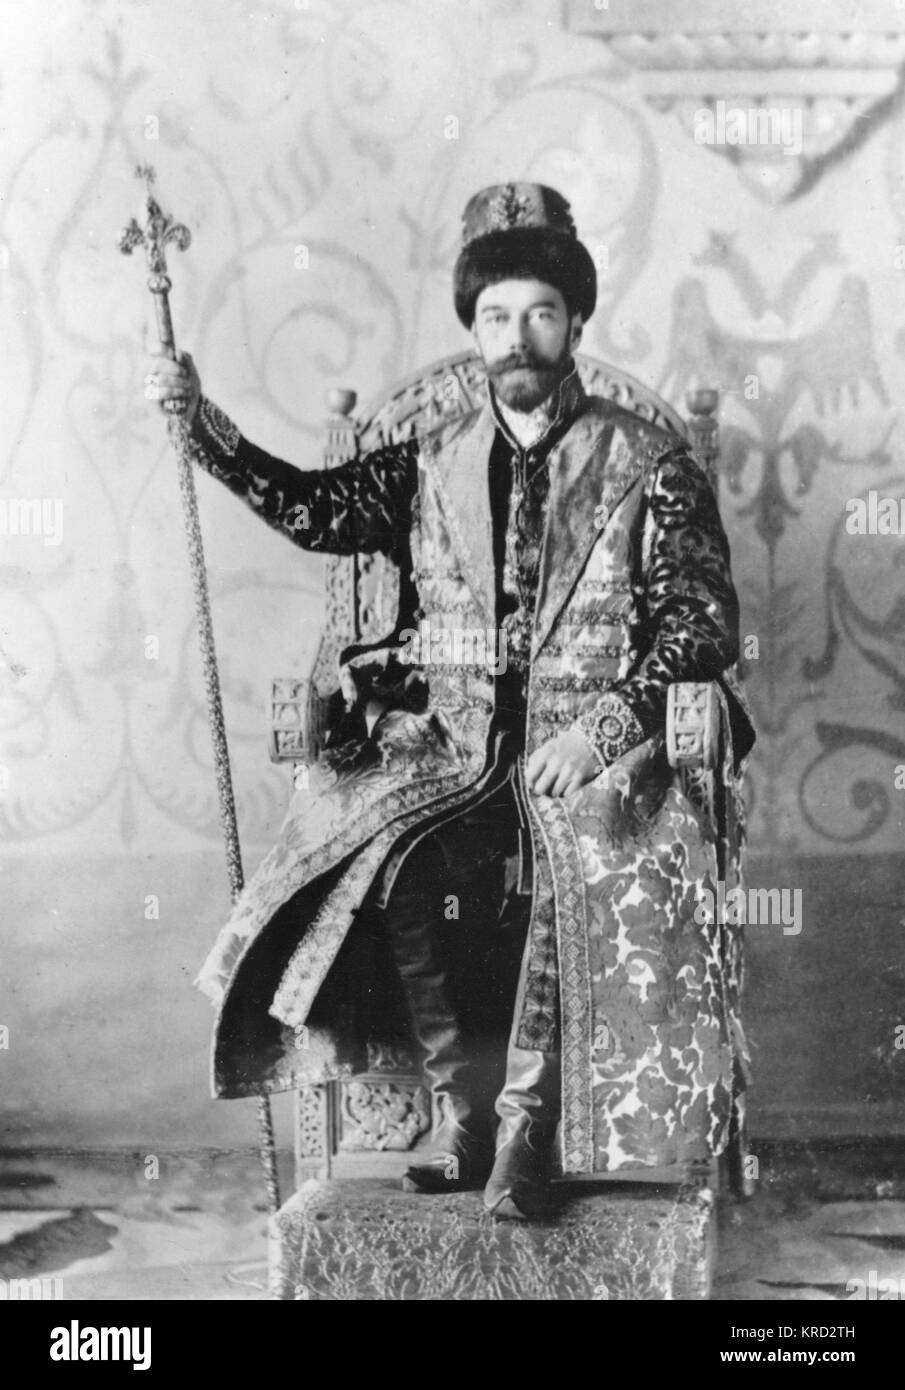 Tsar Nicholas II of Russia on 13 February 1903, sitting on a thrown in extravigant traditional Russian costume before - Stock Image